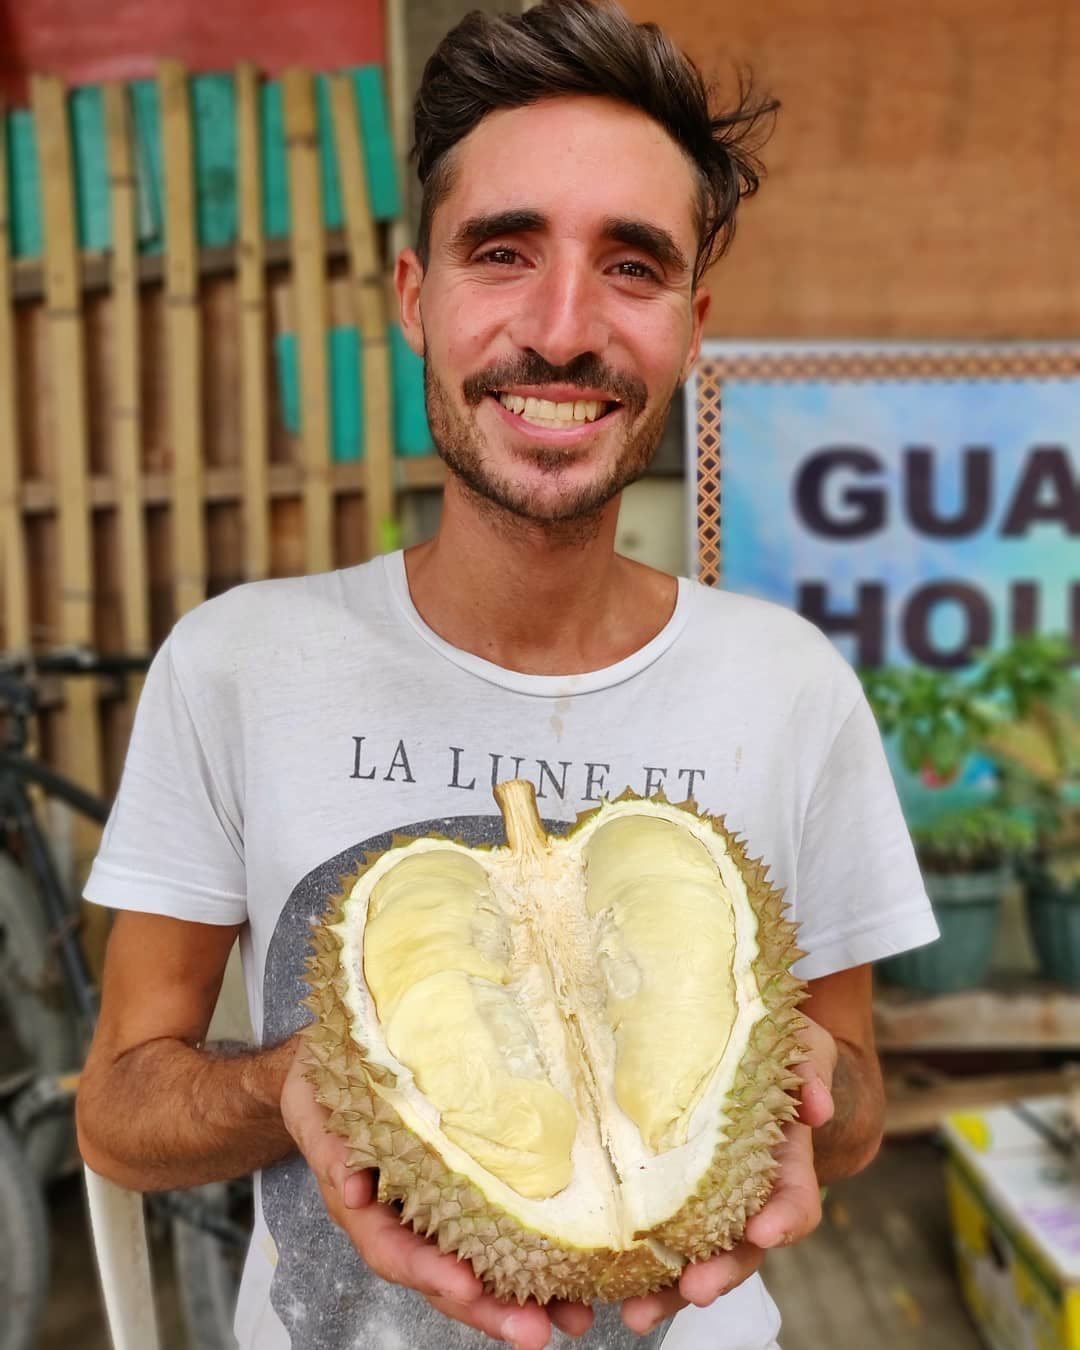 Pablo Salvatierra happily holds a durian. Photo: Instagram/sweetconscience